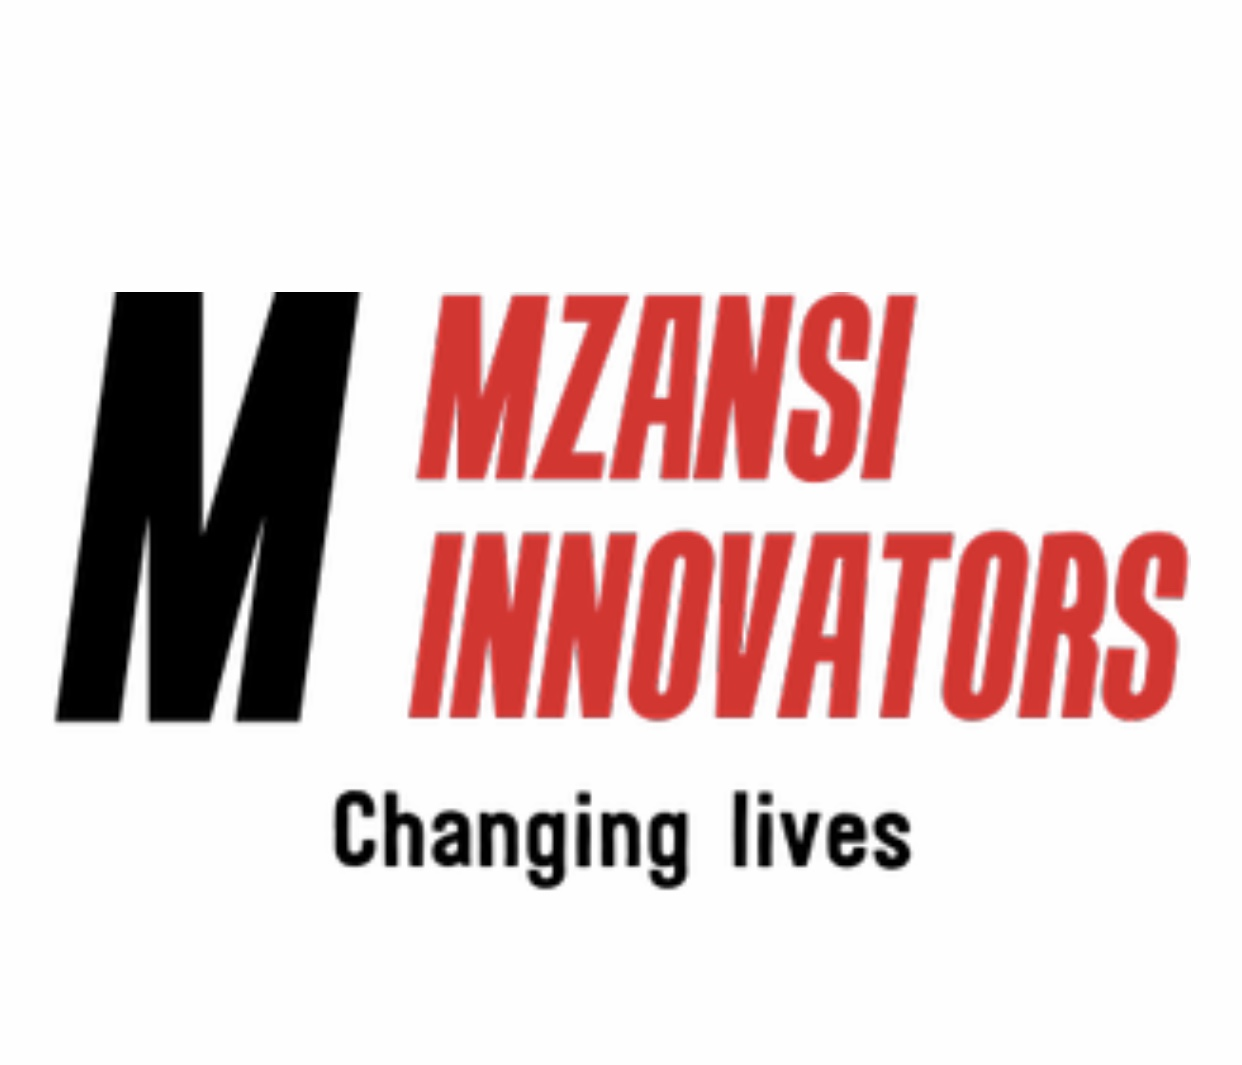 https://www.mncjobs.co.za/company/mzansi-innovators